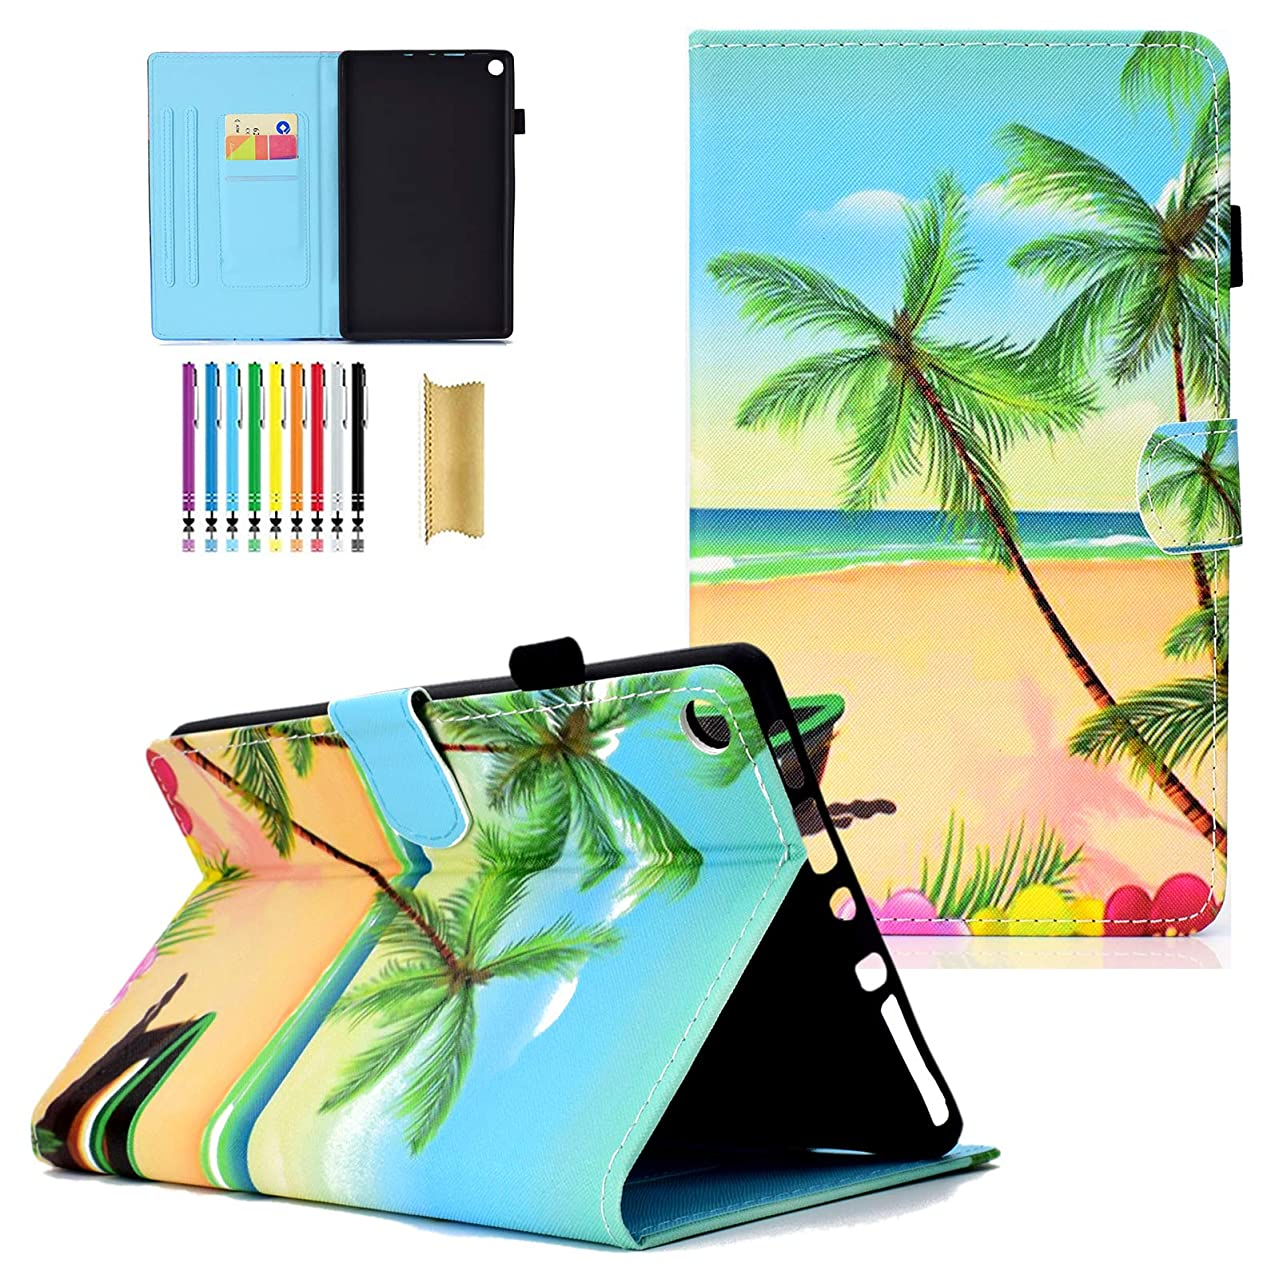 LittleMax Kindle Fire HD 8 Case,PU Leather Case Flip Folio Stand Auto Wake/Sleep Cover for Amazon Kindle Fire HD 8 7th Gen & 6th Gen -#4 Beach